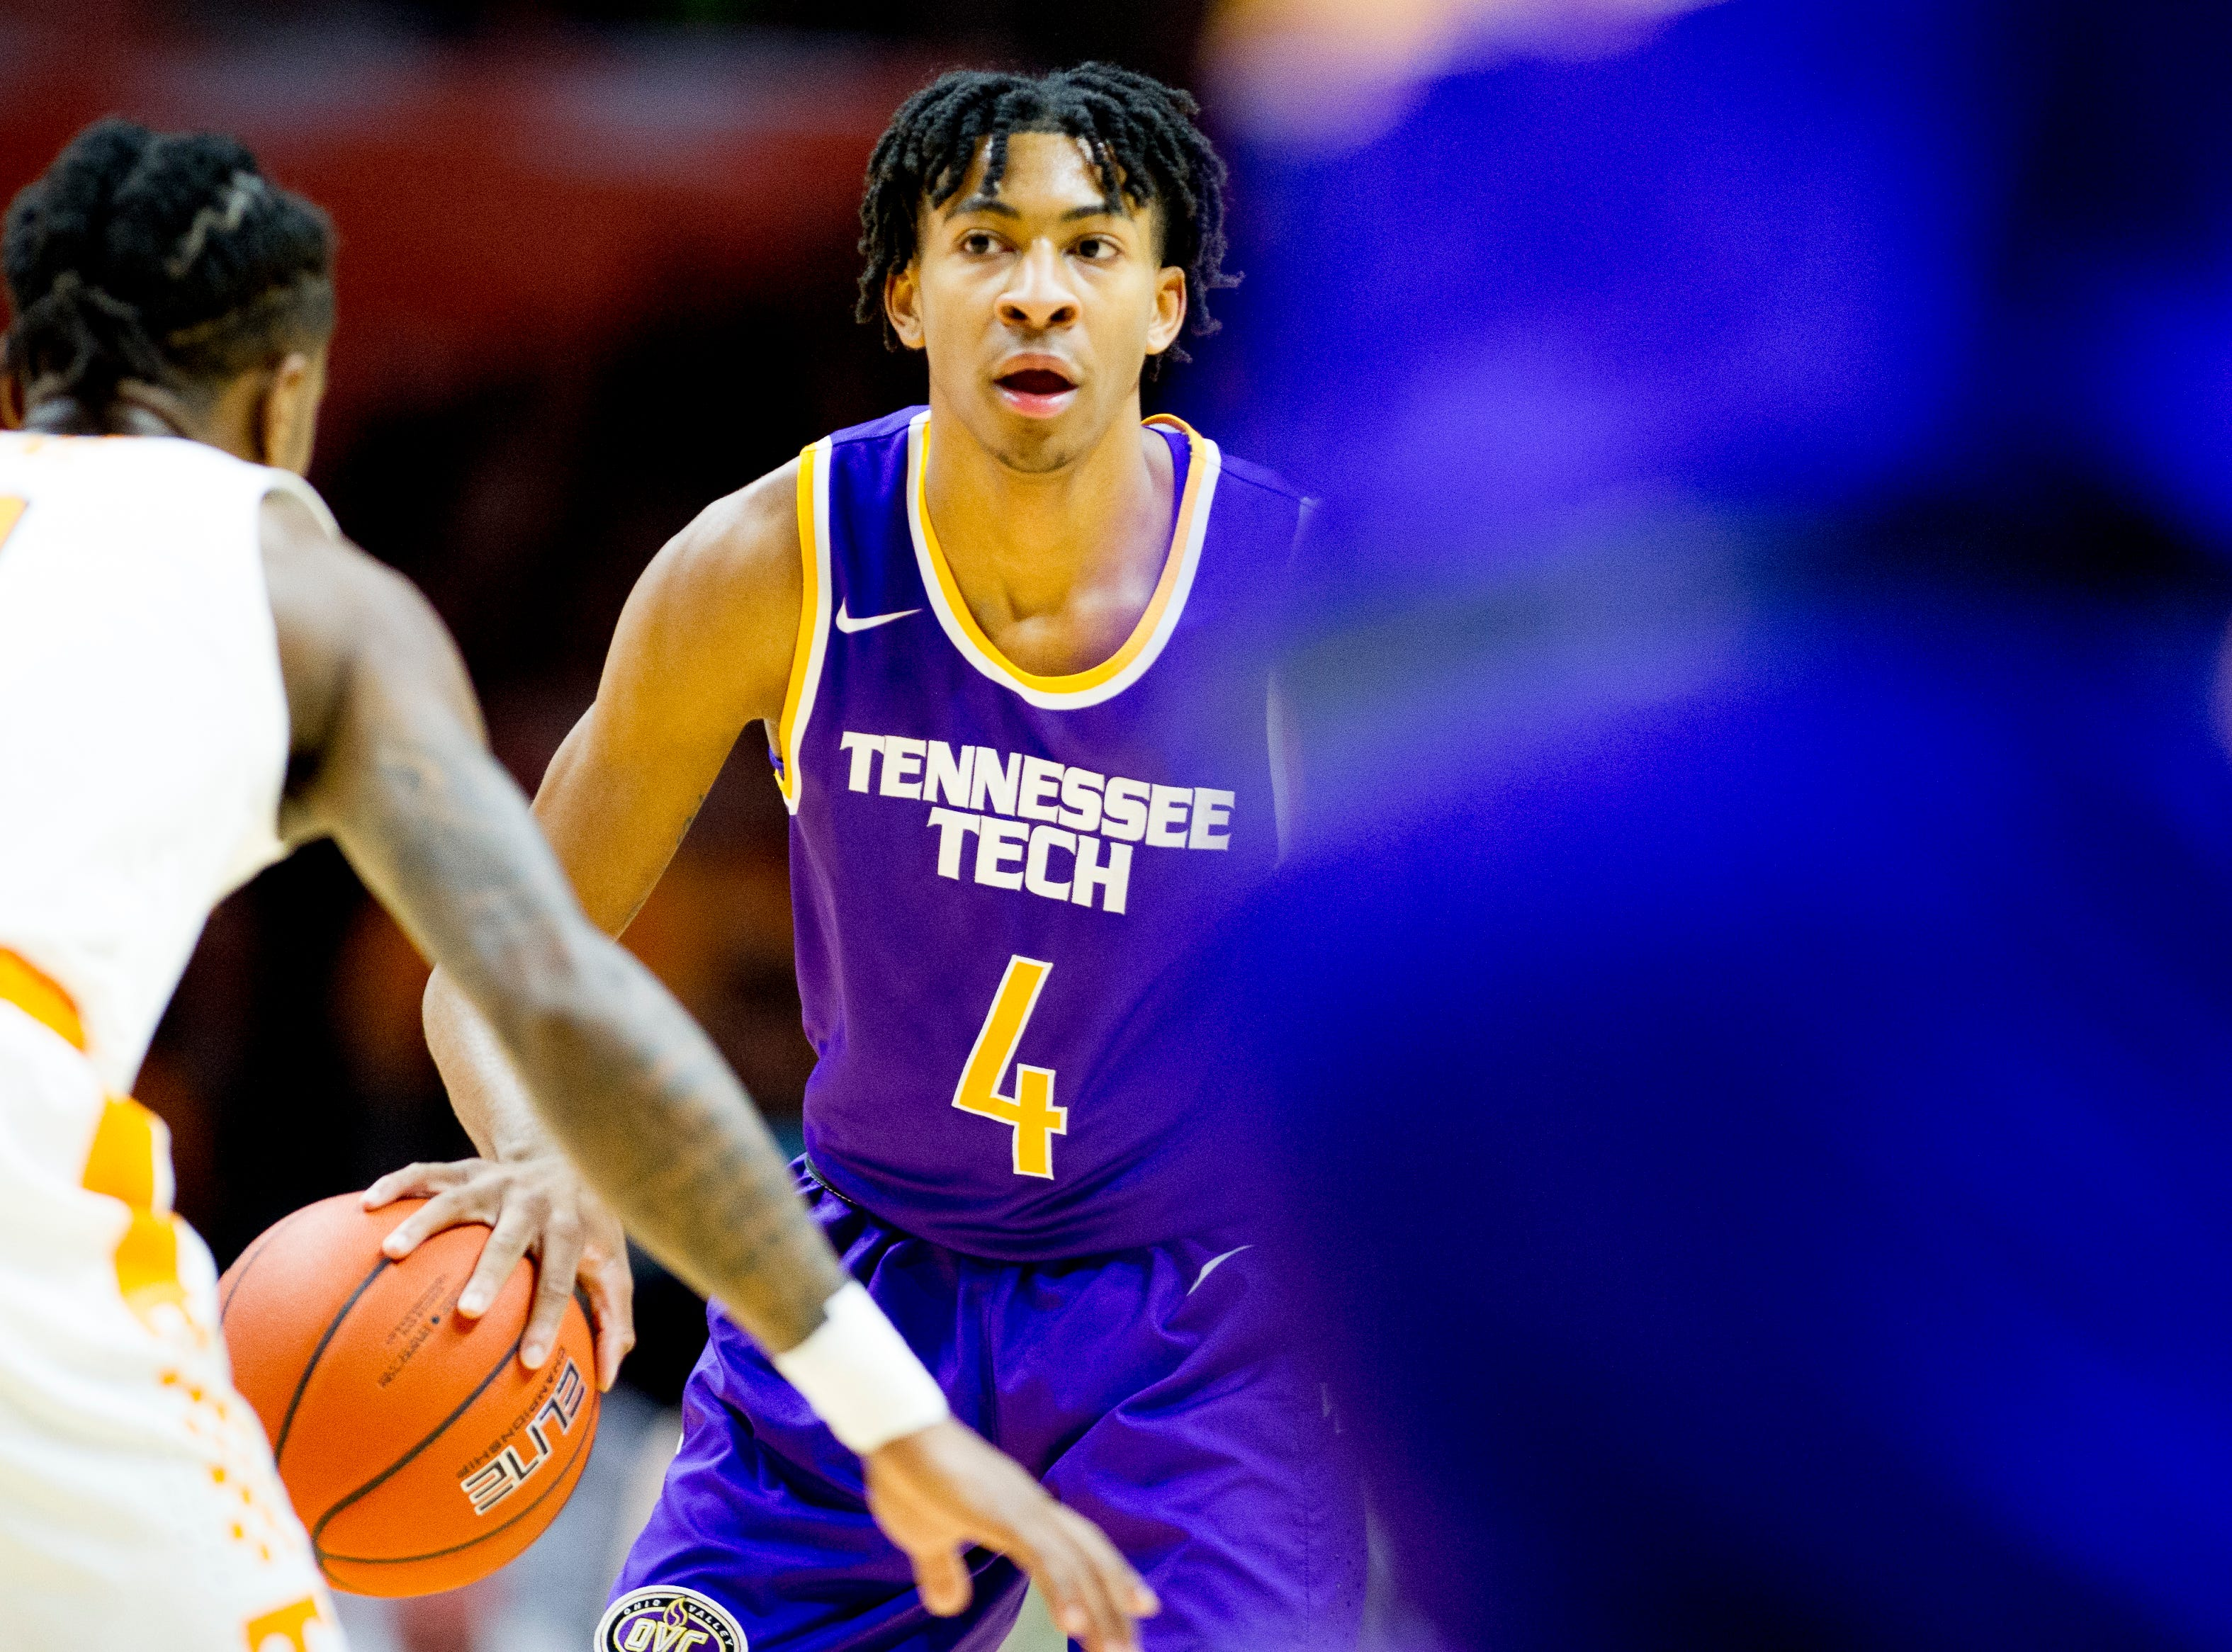 Tennessee Tech guard Jr. Clay (4) looks to pass during a game between Tennessee and Tennessee Tech at Thompson-Boling Arena in Knoxville, Tennessee on Saturday, December 29, 2018.